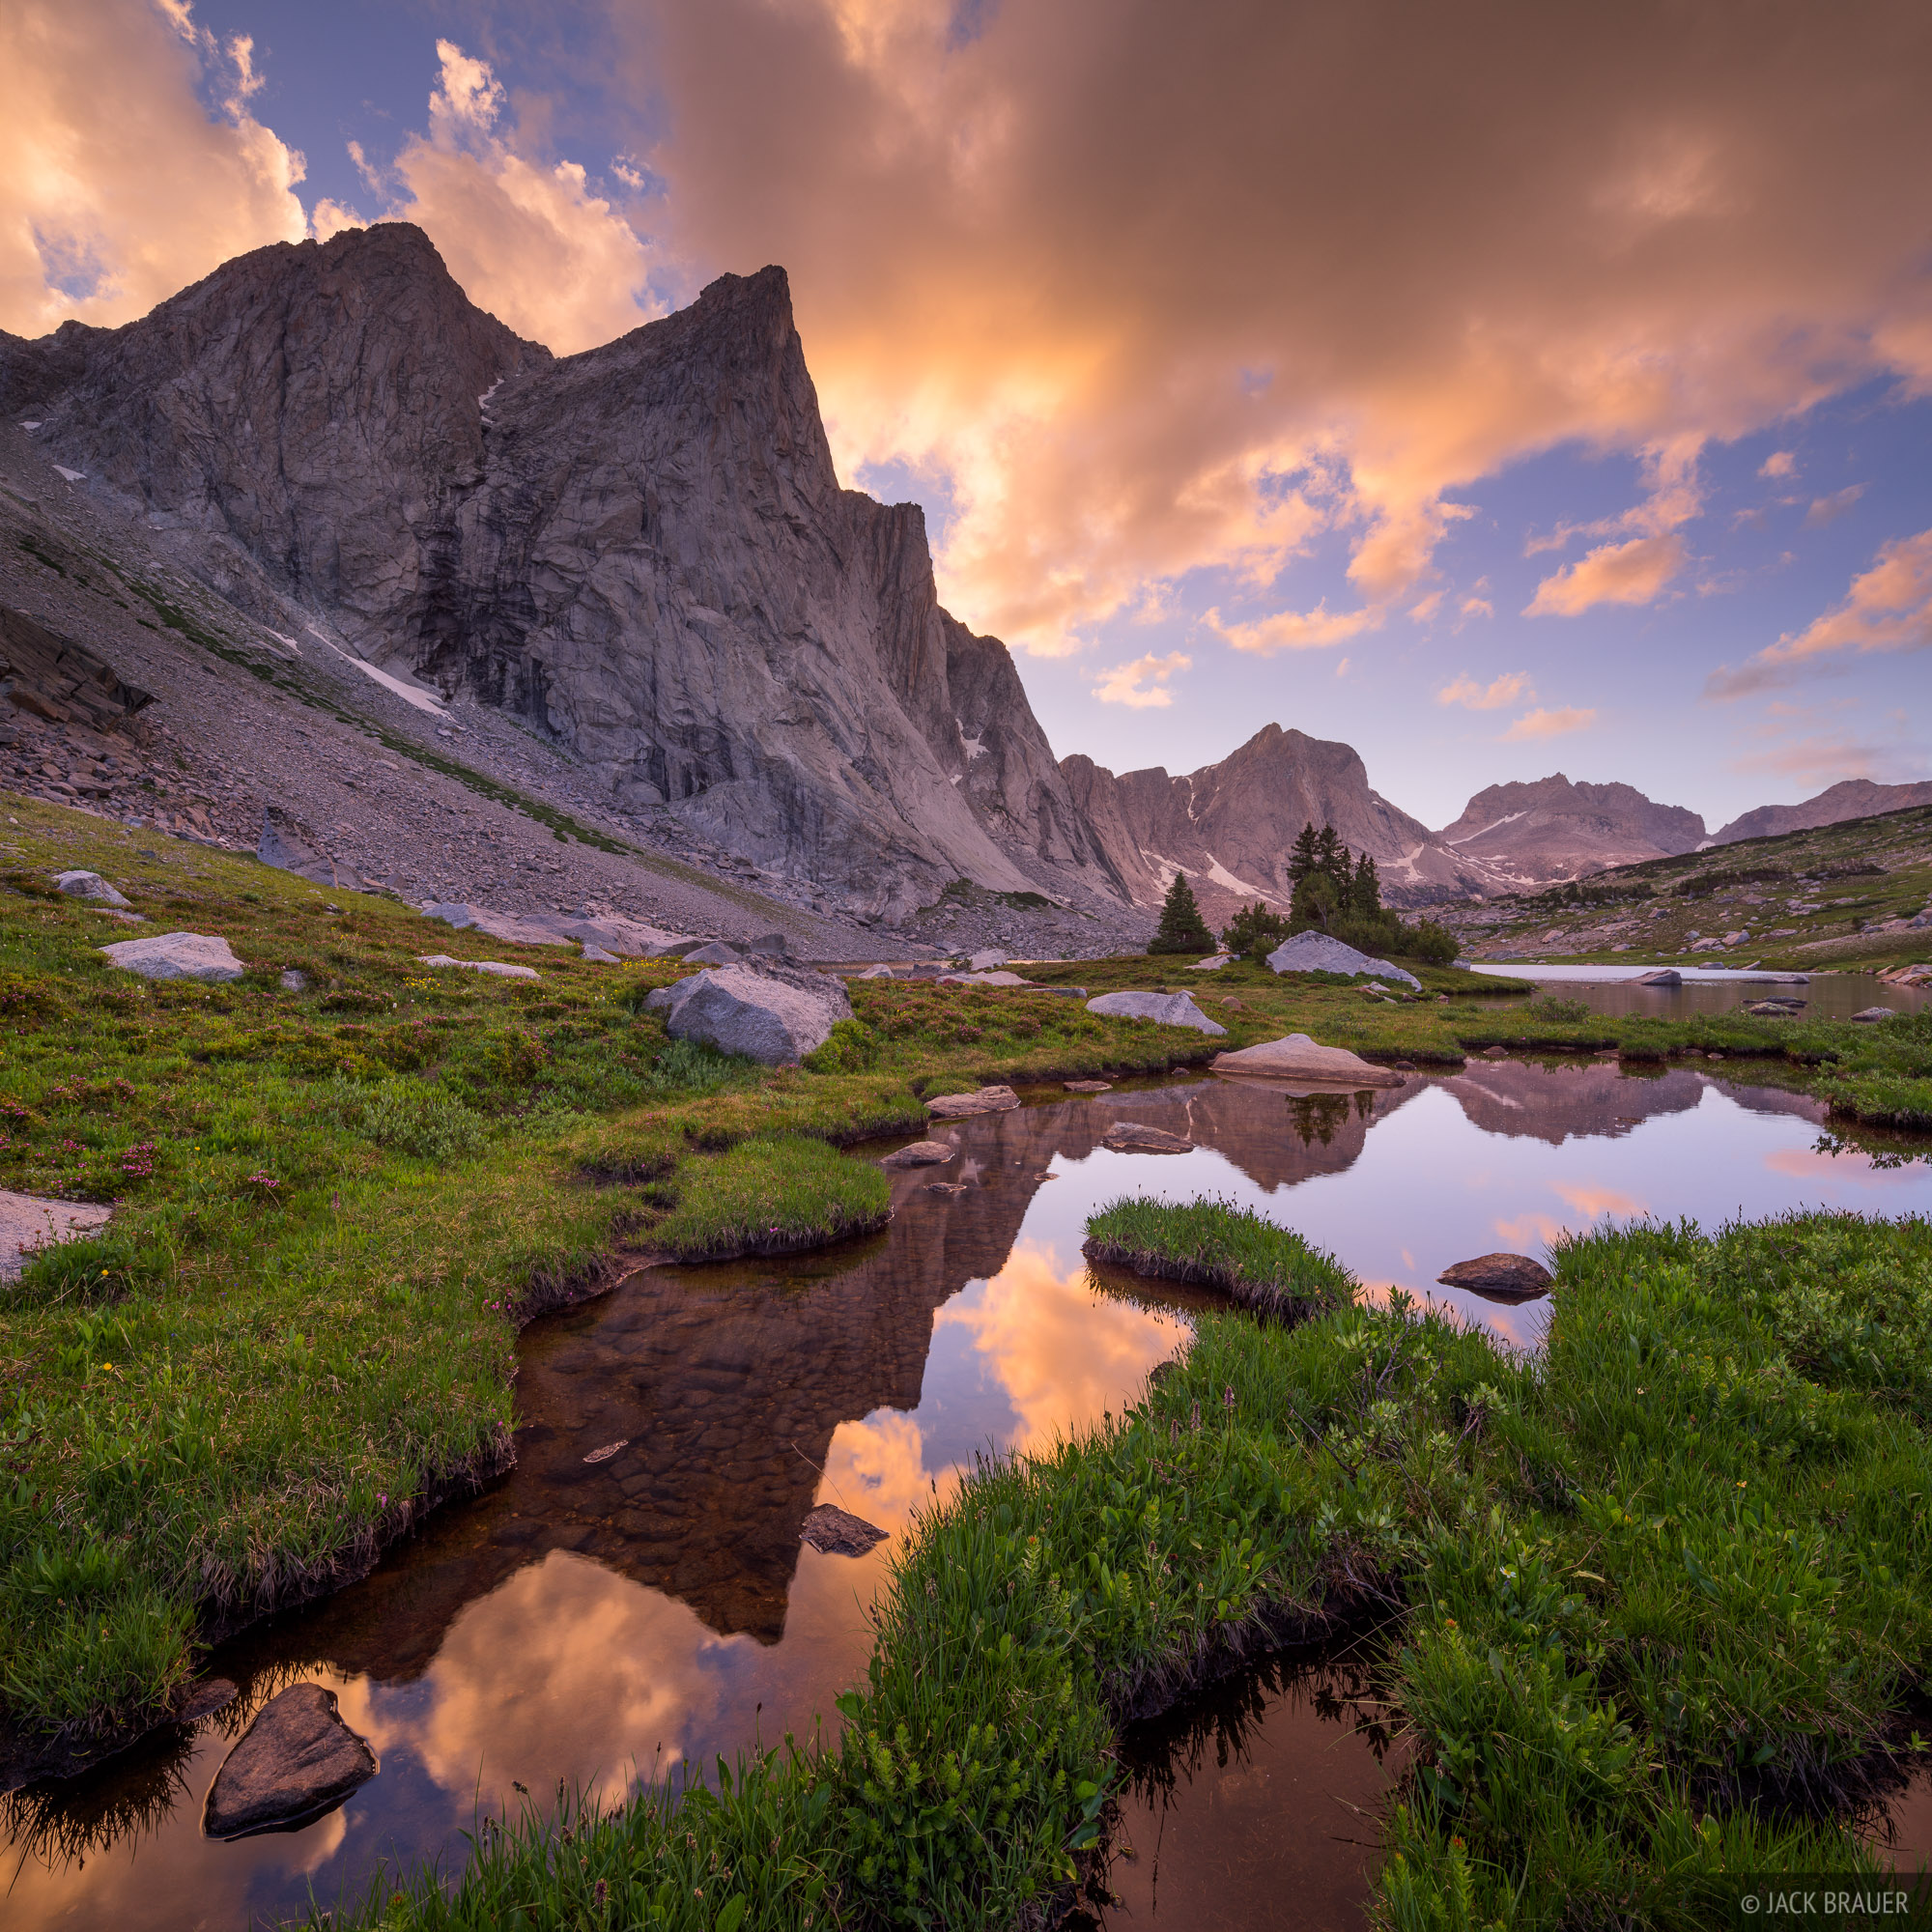 Ambush Peak,Mount Bonneville,Raid Peak,Wind River Range,Wyoming, photo